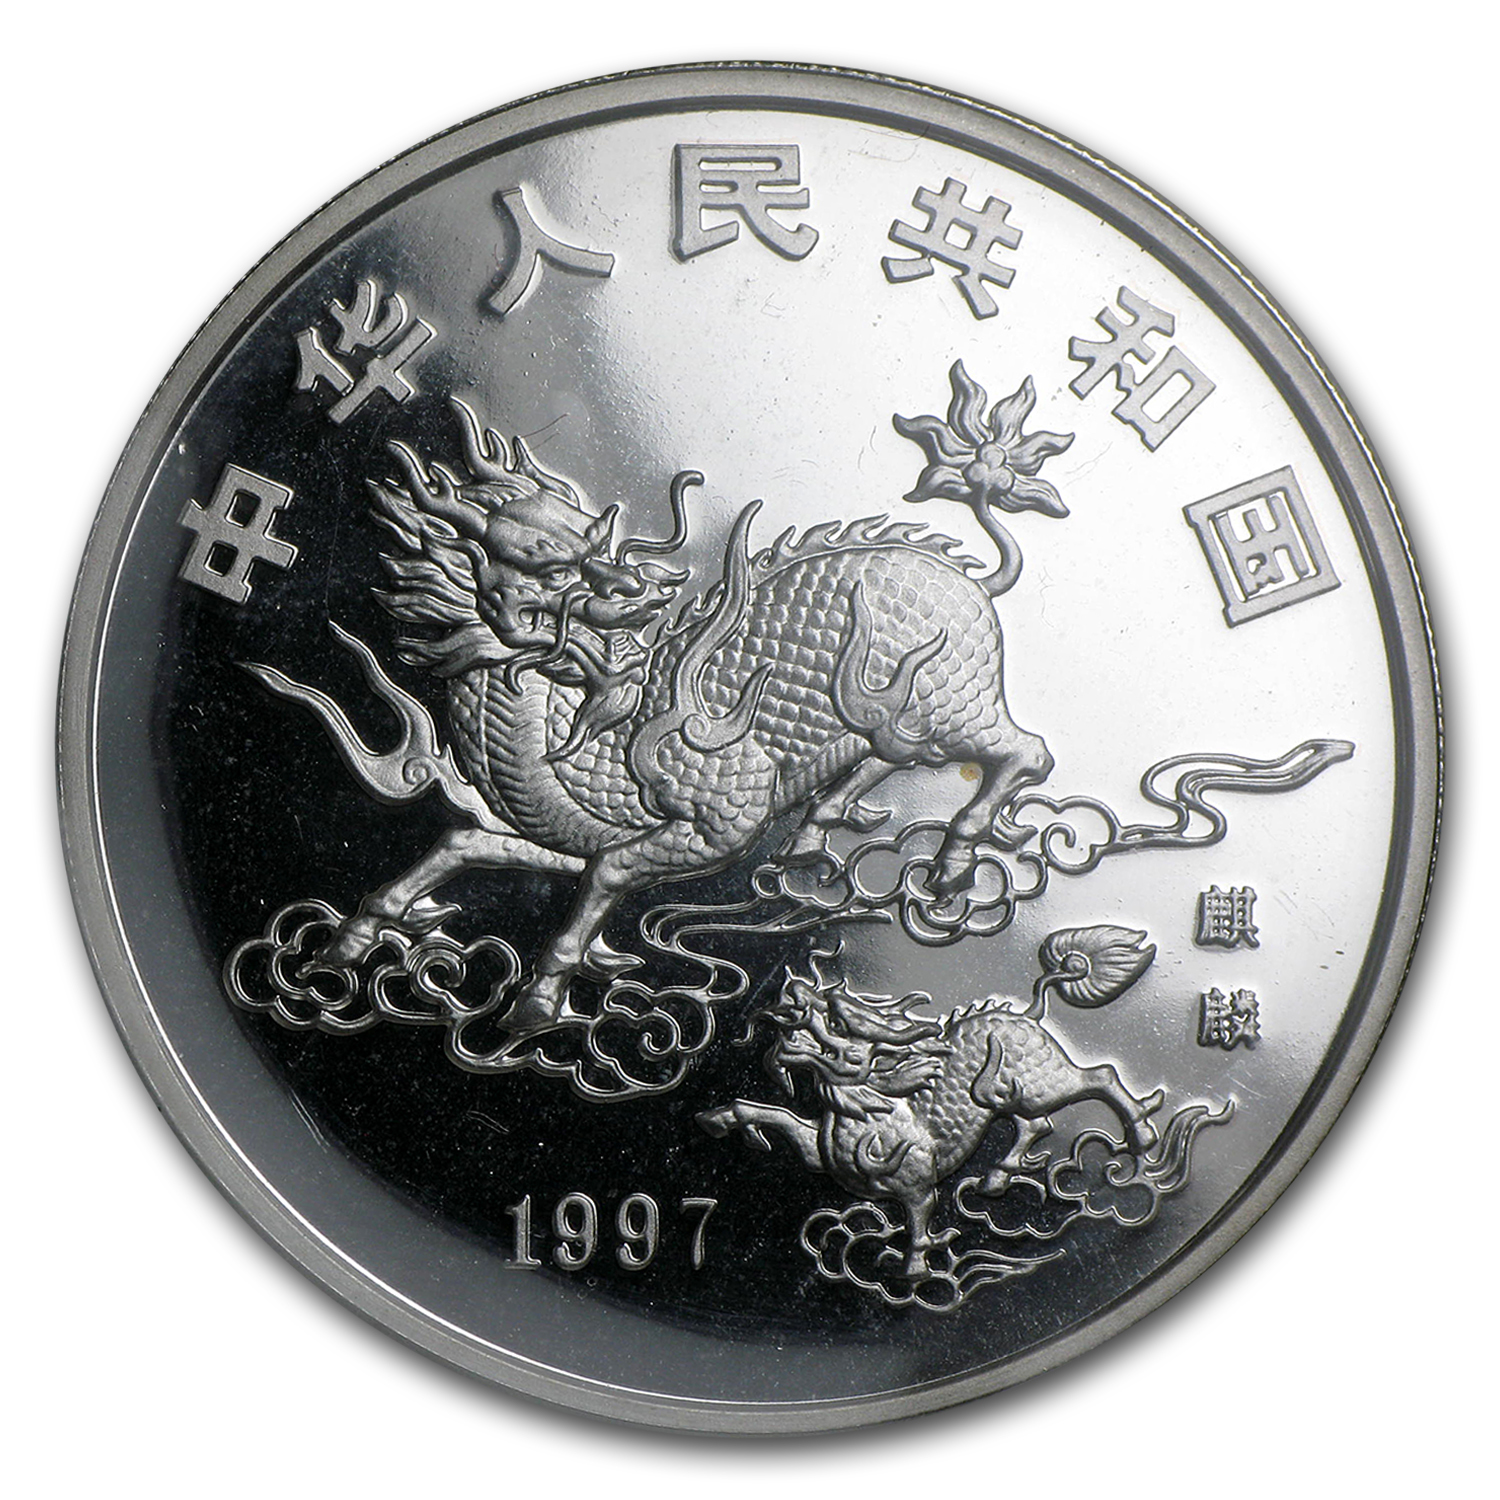 China 1997 (10 Yuan Unicorn) 1 oz Silver Coin (Sealed)